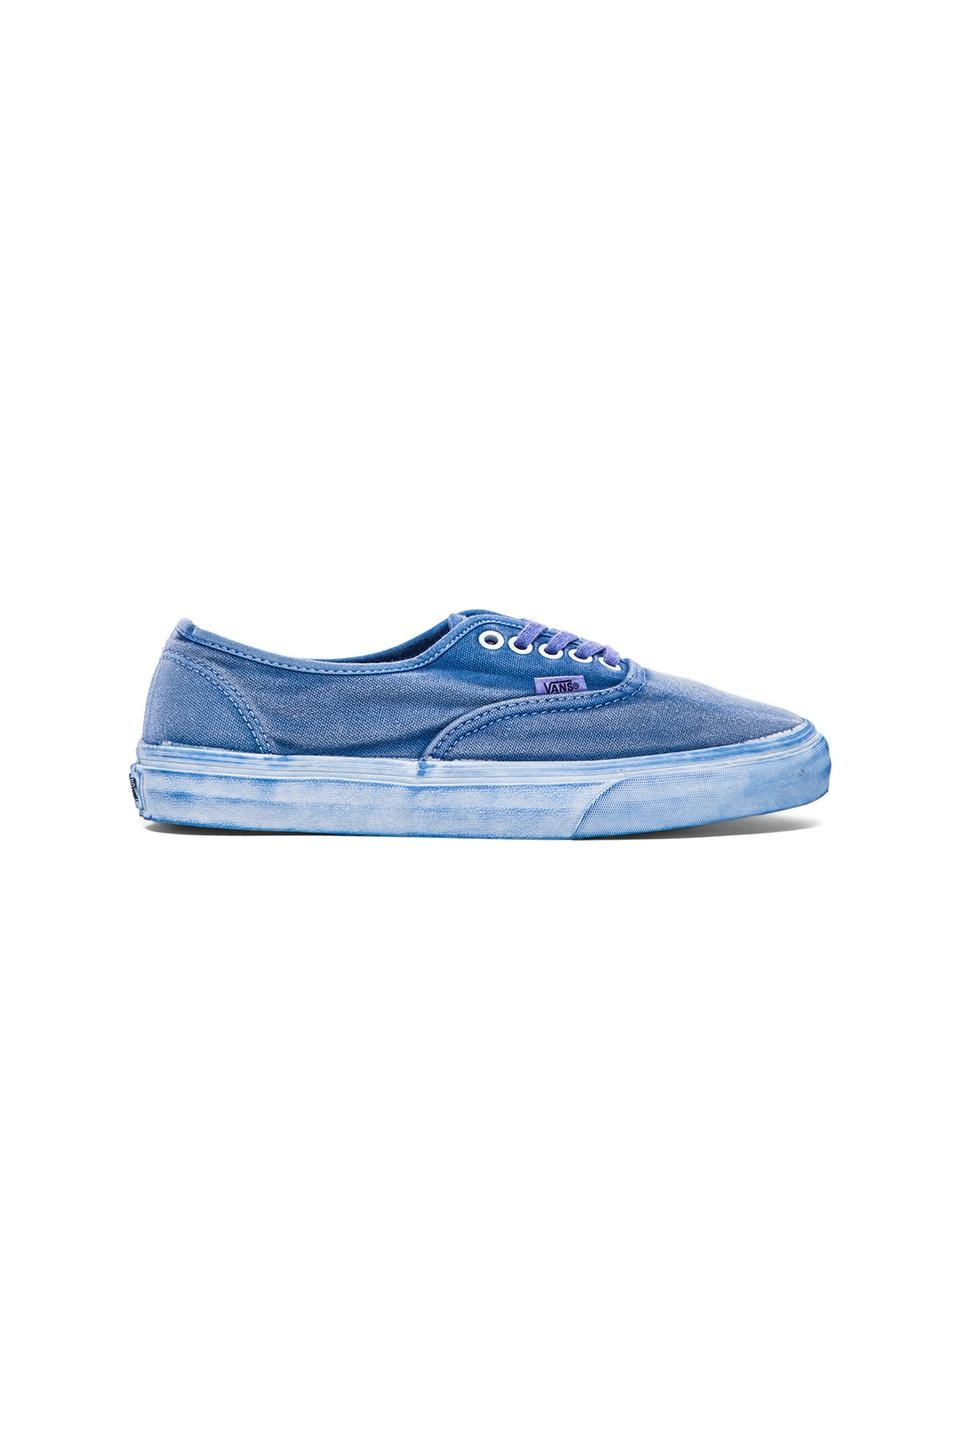 Vans California Authentic Over Washed in Dress Blues